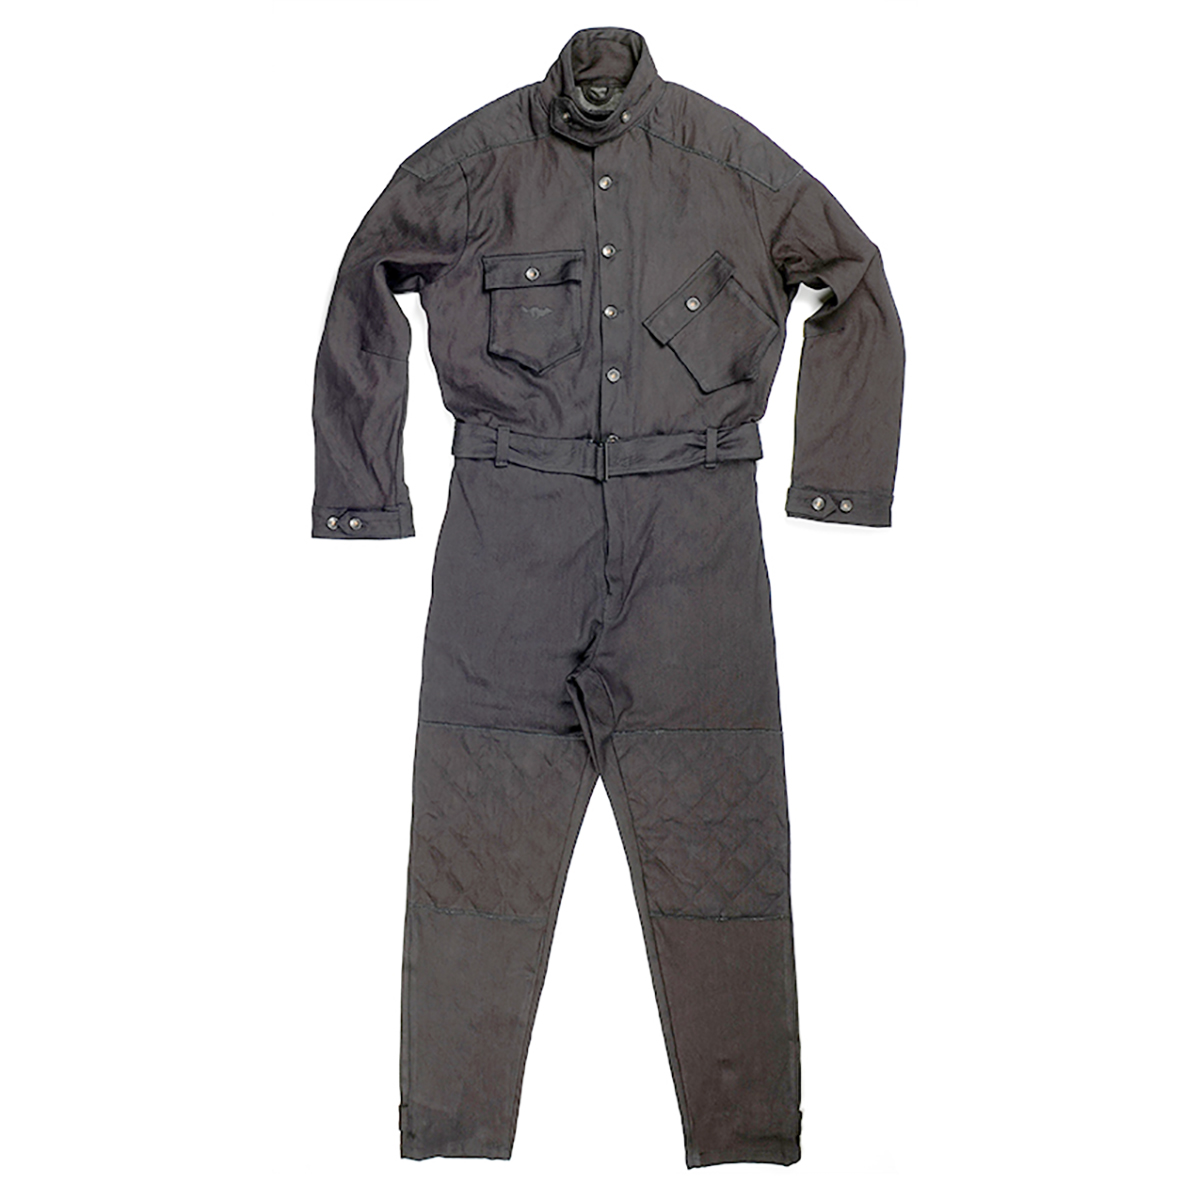 xbonneville-protective-coverall-with-dyneema.jpg.pagespeed.ic.56O8gspBDh